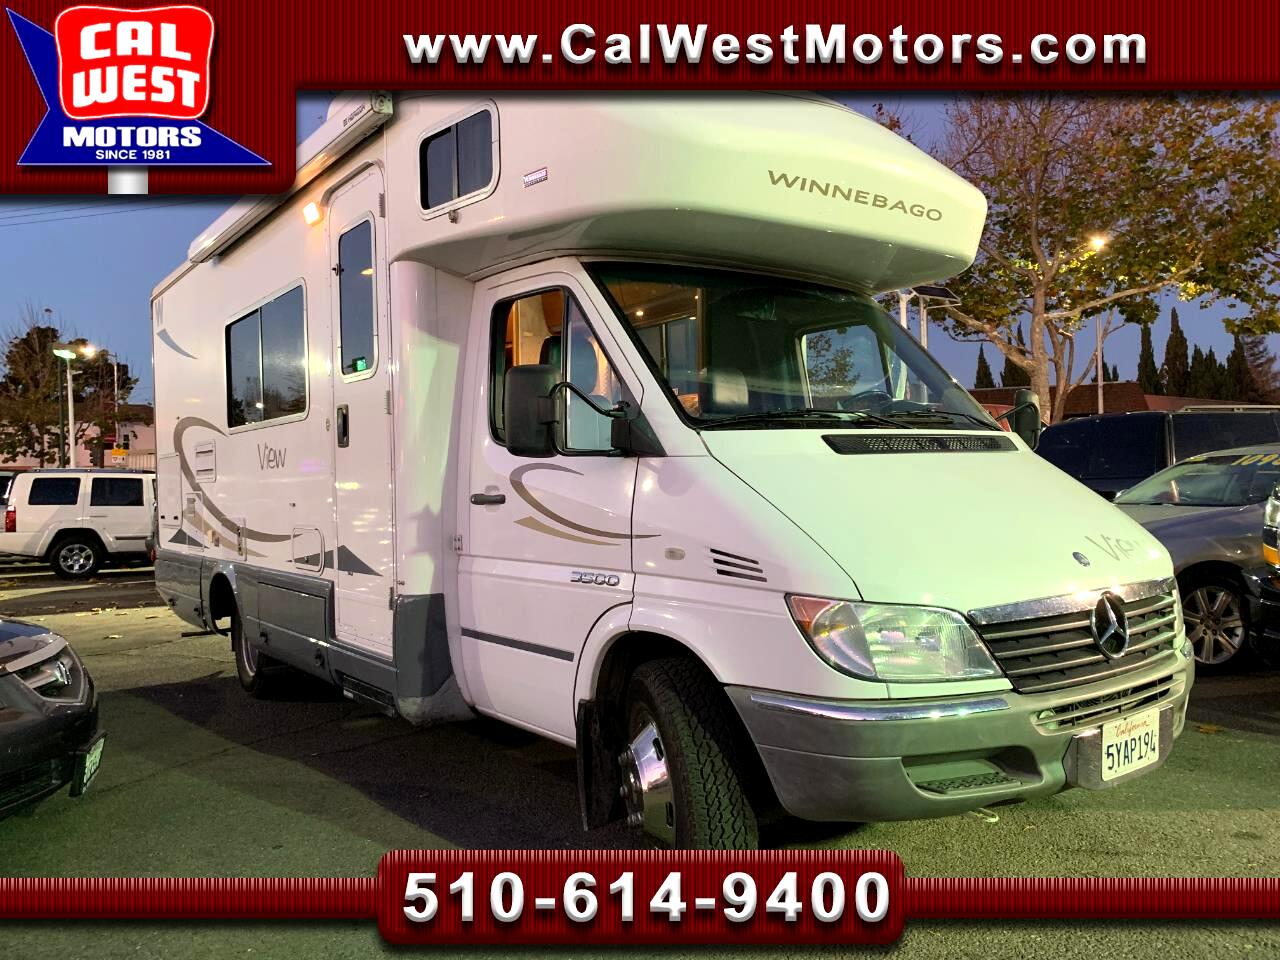 2007 Dodge Sprinter WINNEBAGO MotorHome 23Ft 57K 1Owner MPG+ Nice!